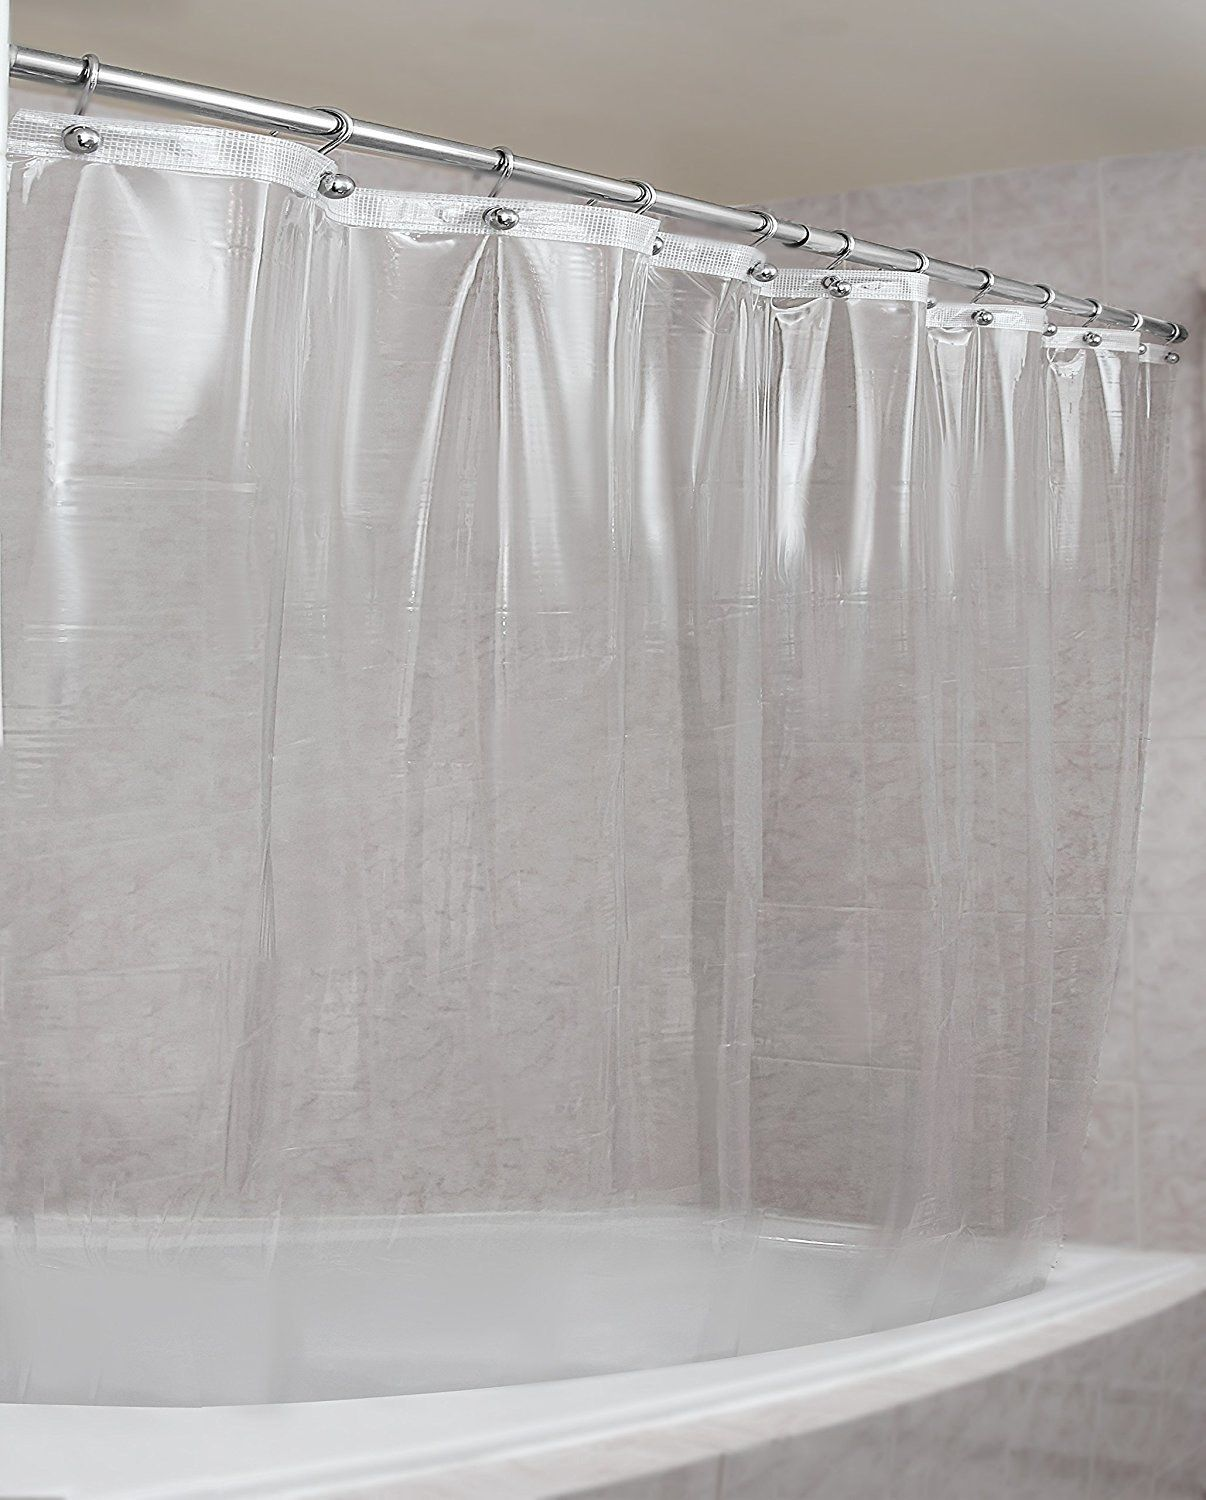 25 Bathroom Products That Just Might Save Your Relationship Cool Shower Curtains